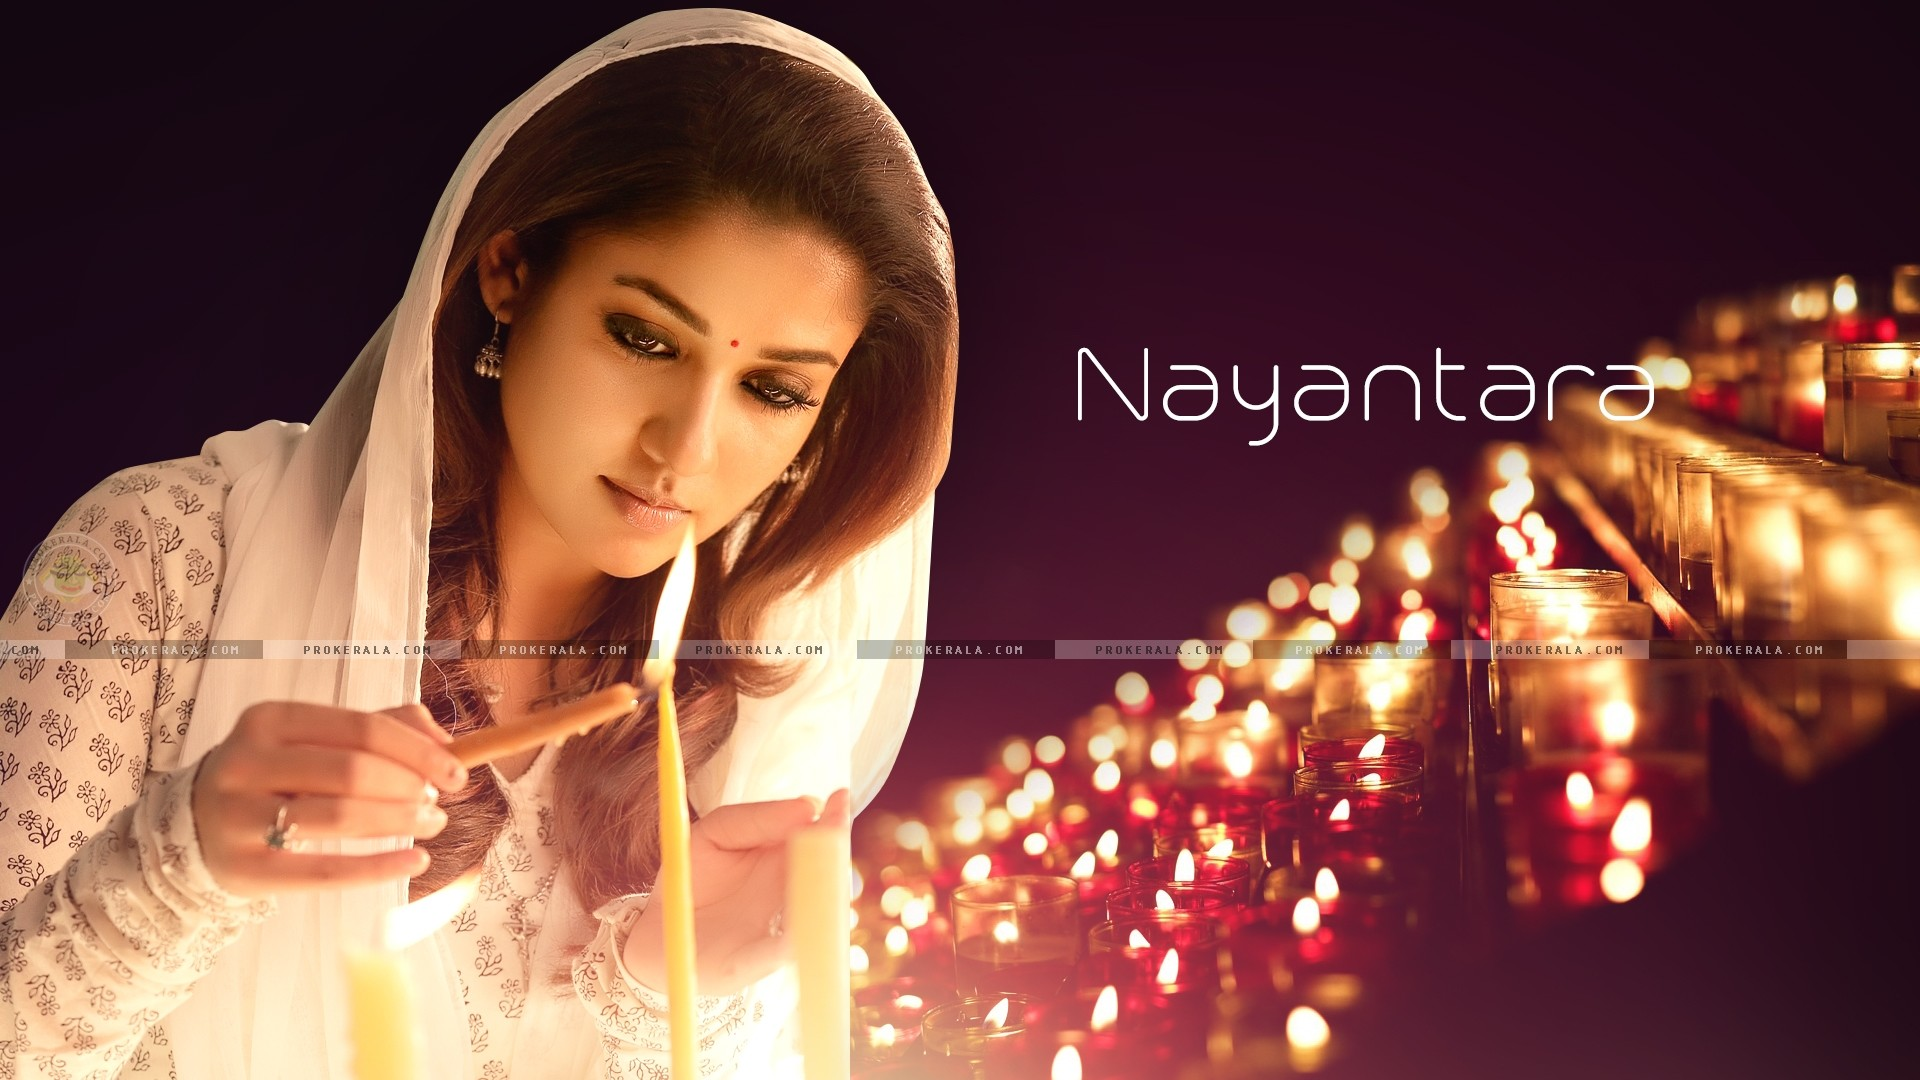 Nayanthara Wallpapers High Resolution and Quality Download 1920×1080